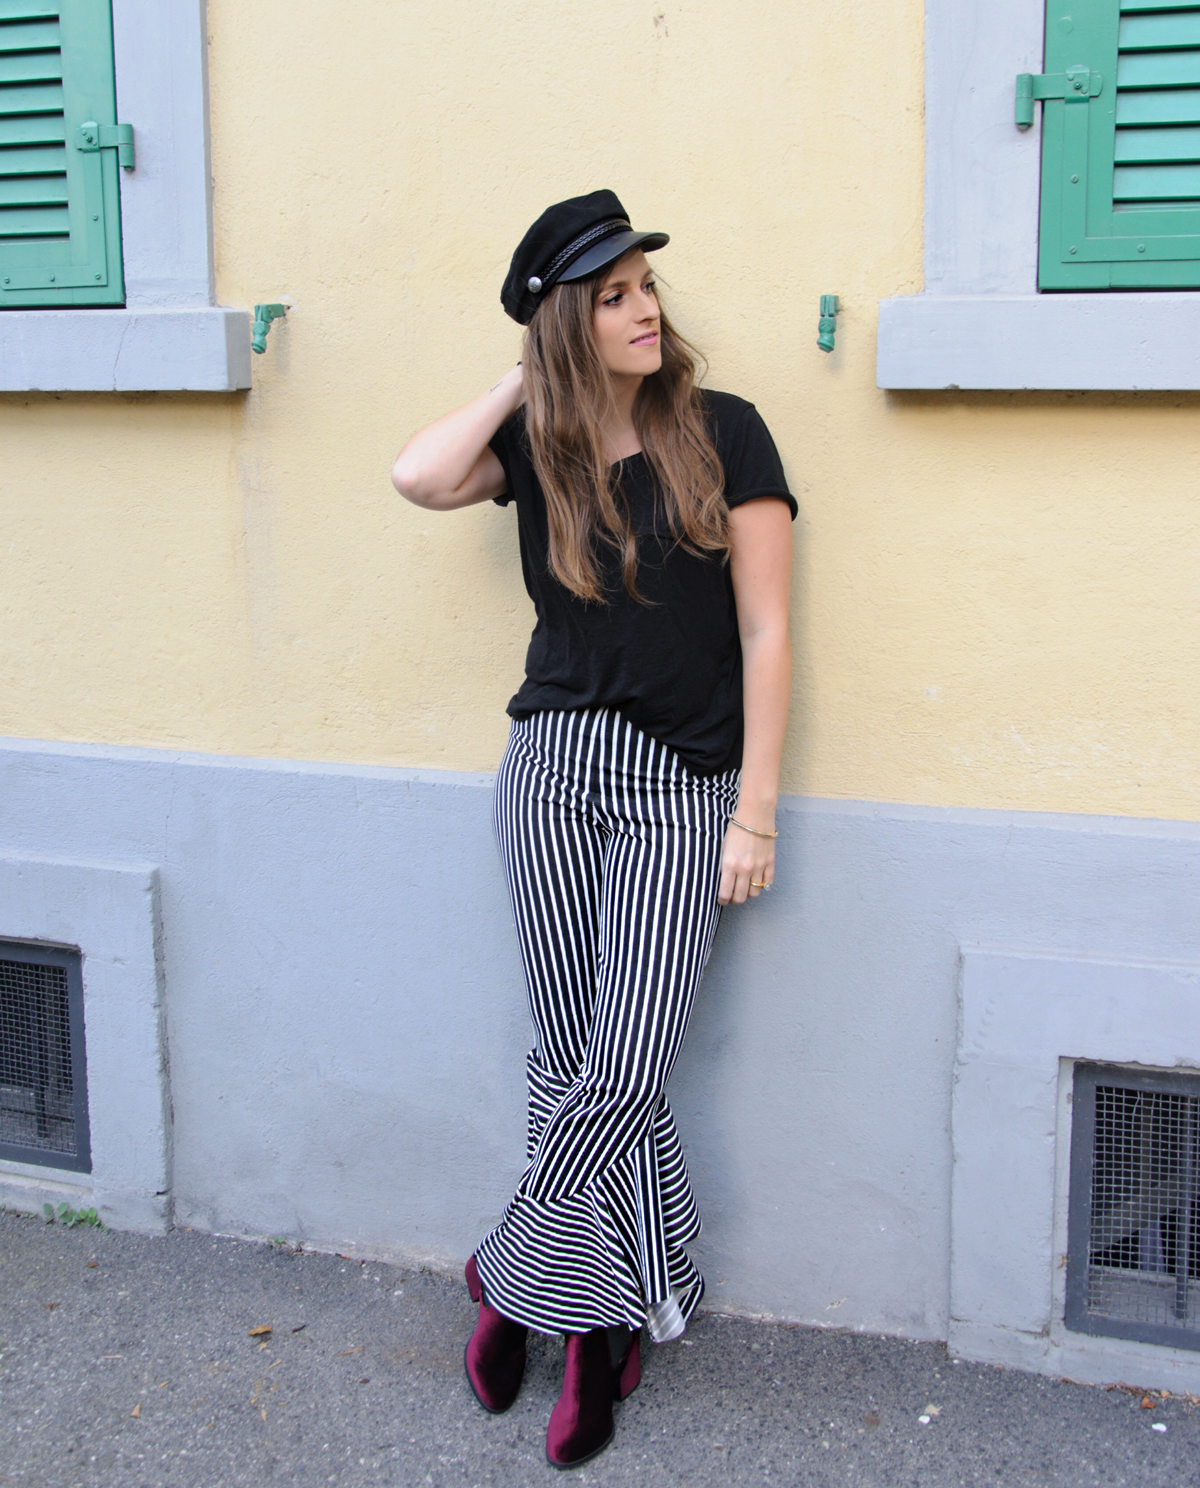 Andrea Steiner, Fashionblogger from Strawberries 'n' Champagne is wearing for Fall a black boy hat with ruffle pants, a basic shirt and a long blue coat.